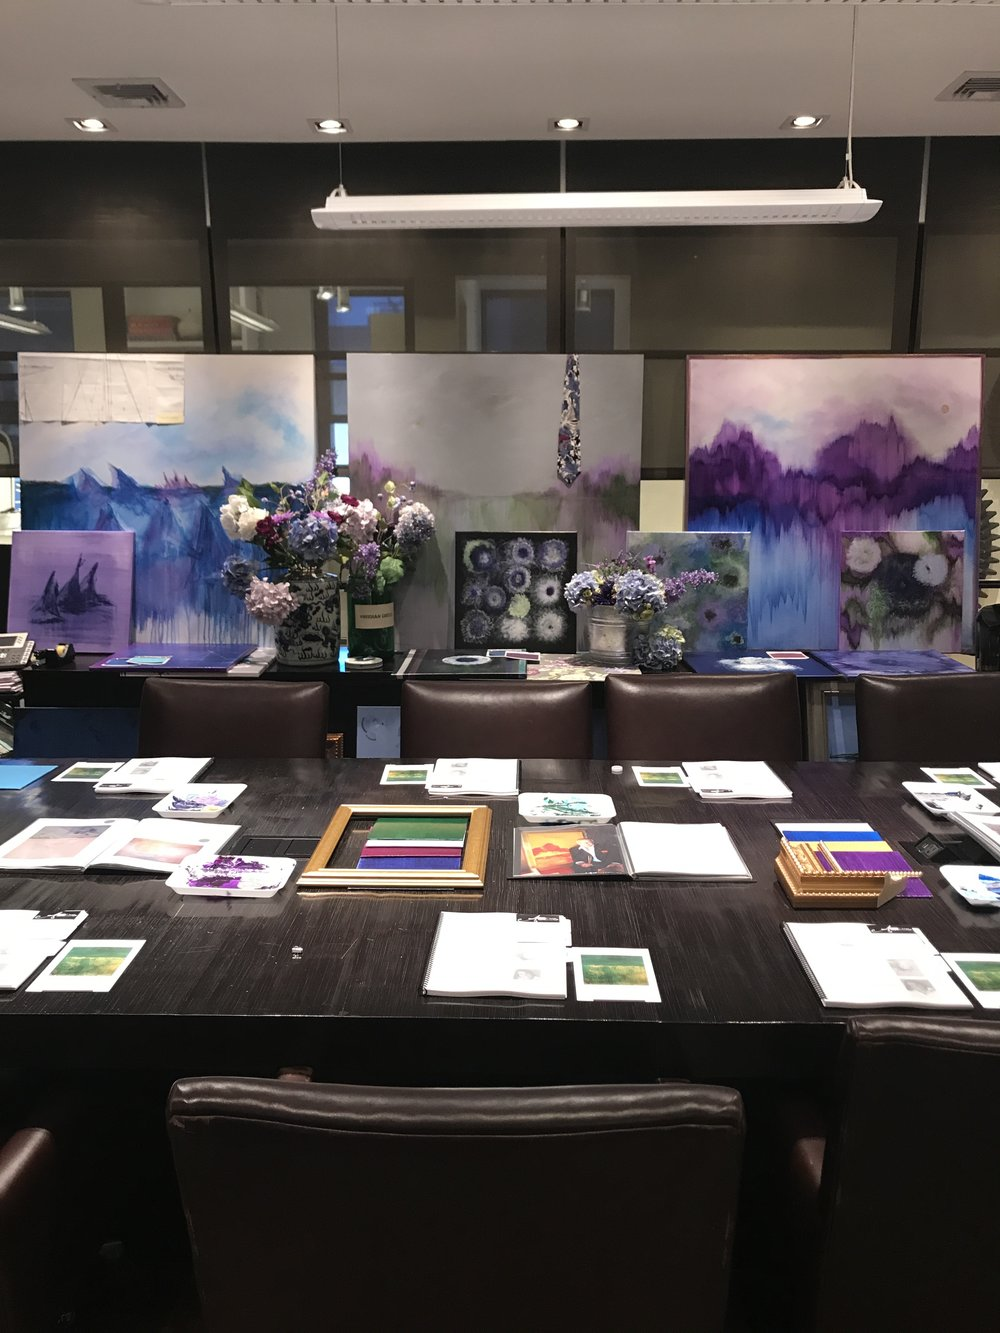 Image provided by Barry Lantz Art. Shot during Barry's presentation at Kravet headquarters.